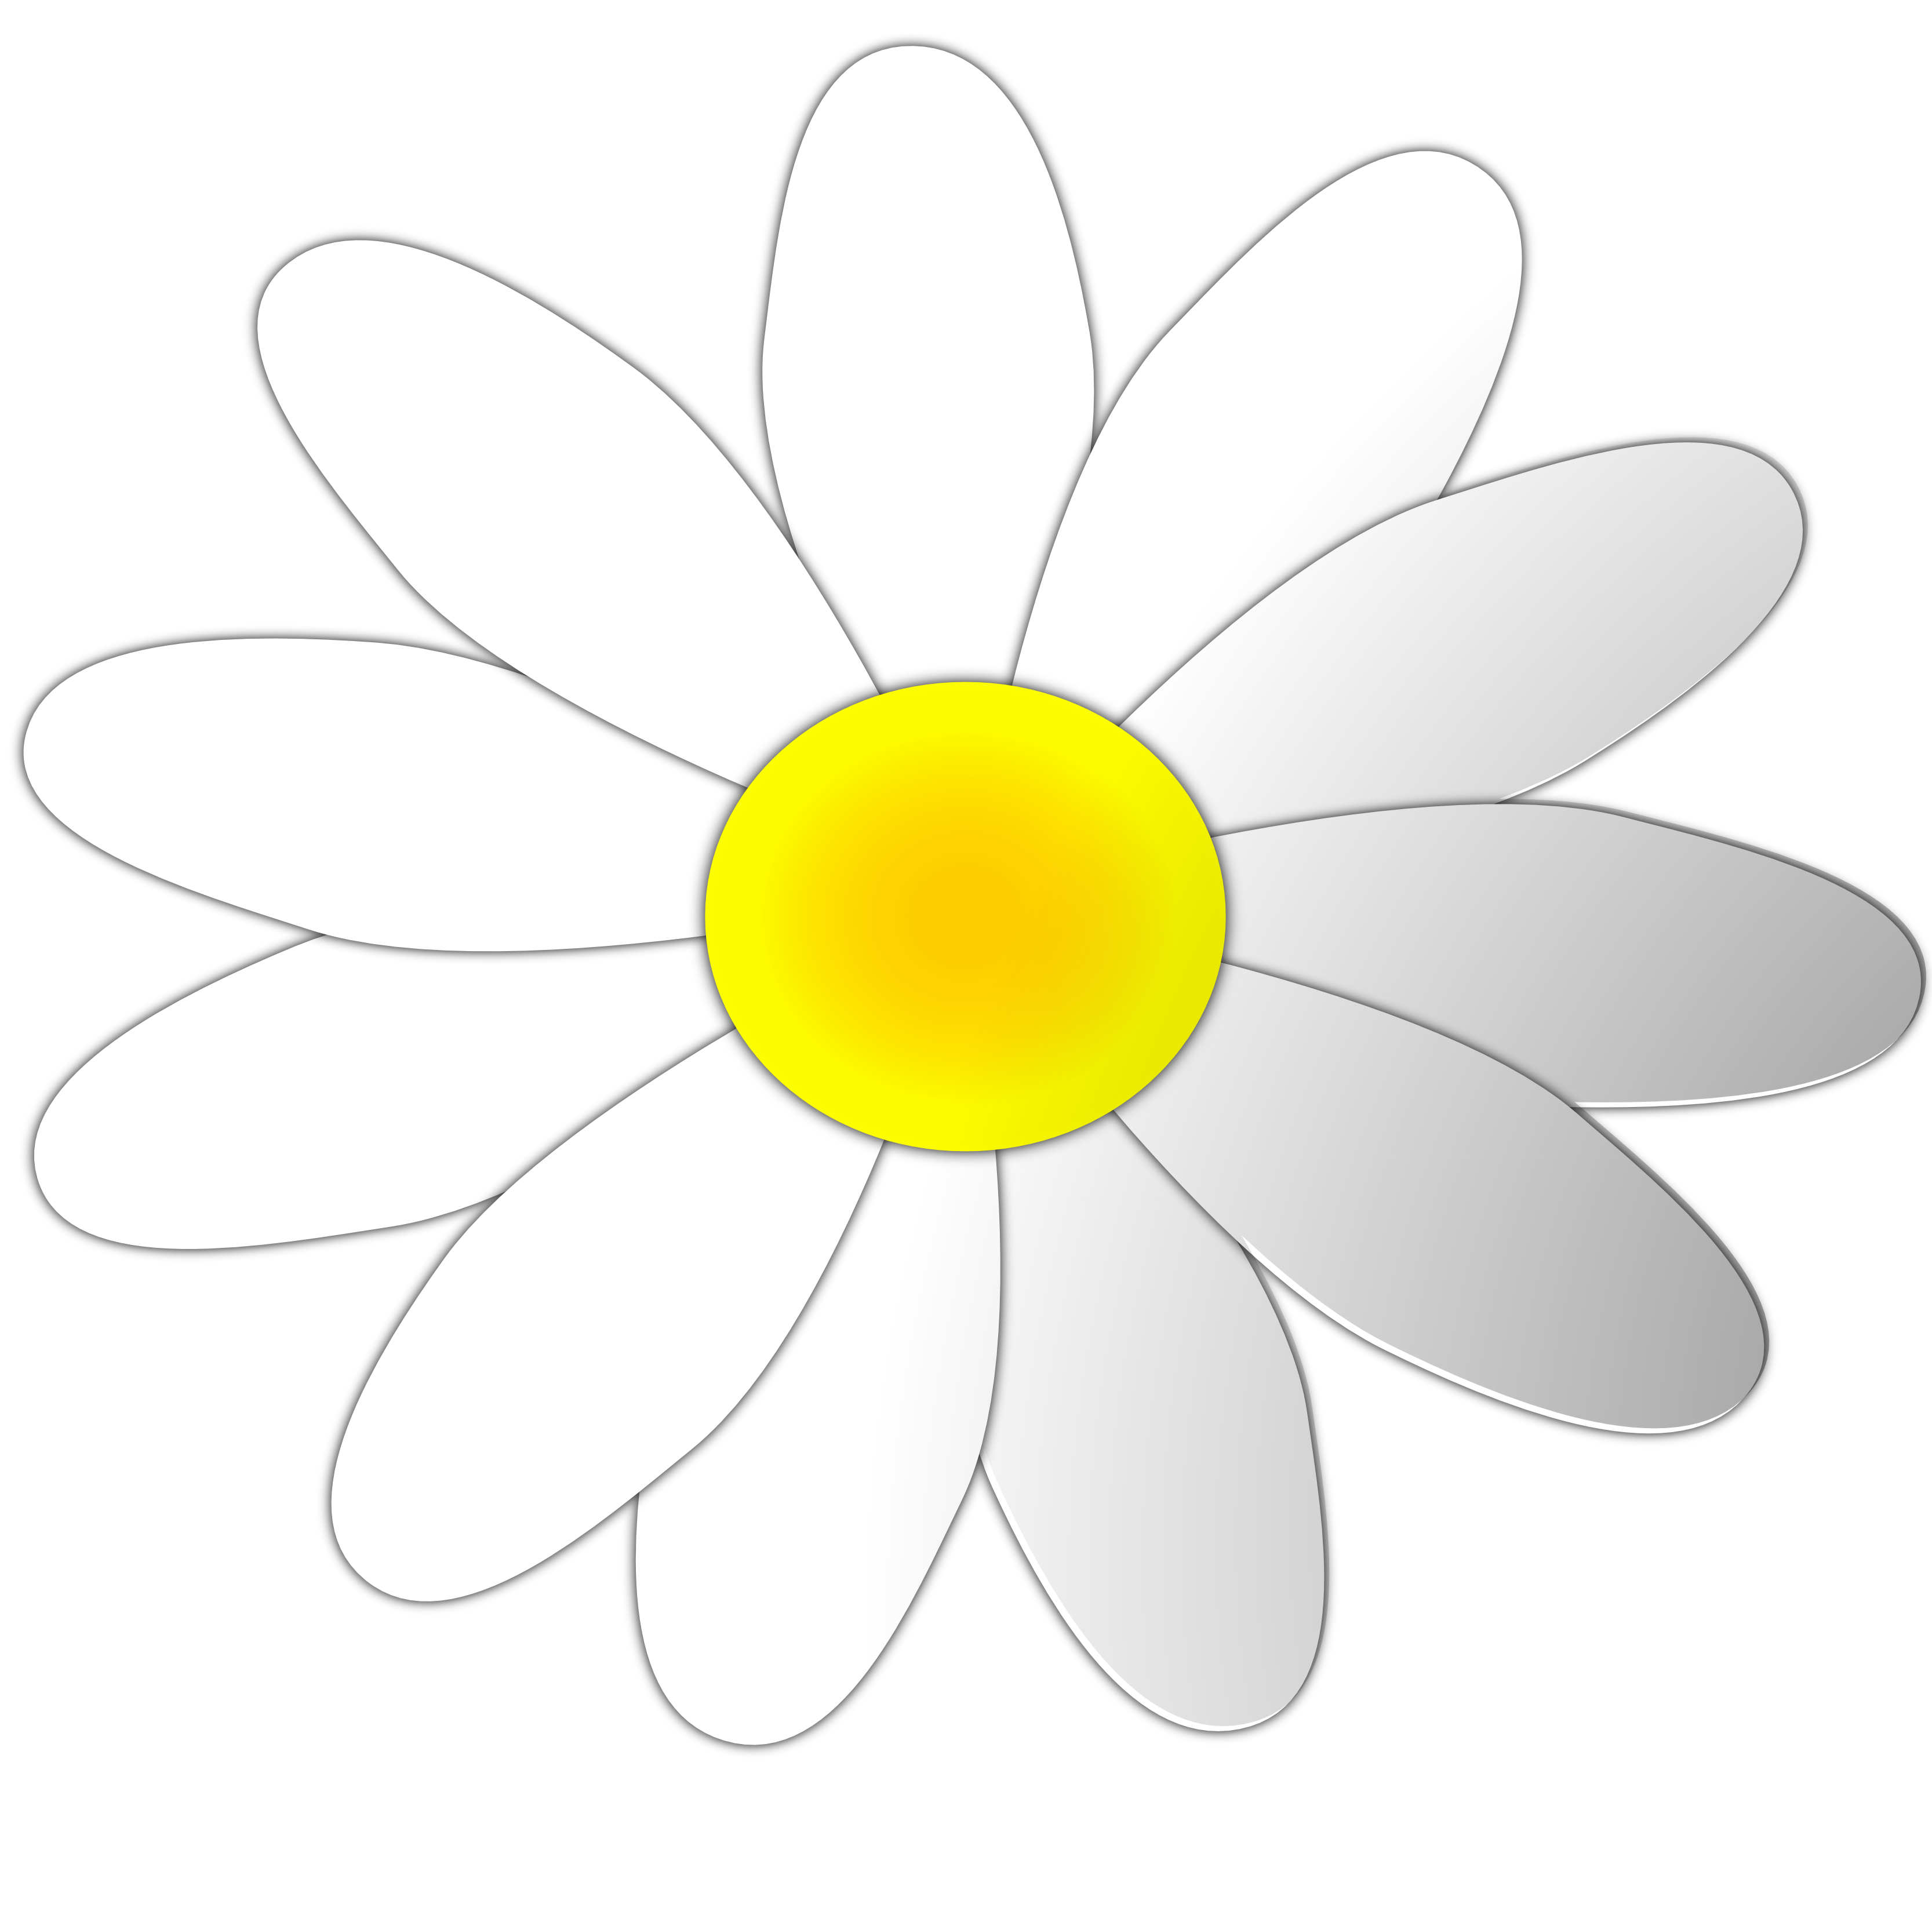 Clipart yellow flower pumpkin png free Black And White Flower Images Clipart | Free download best Black And ... png free